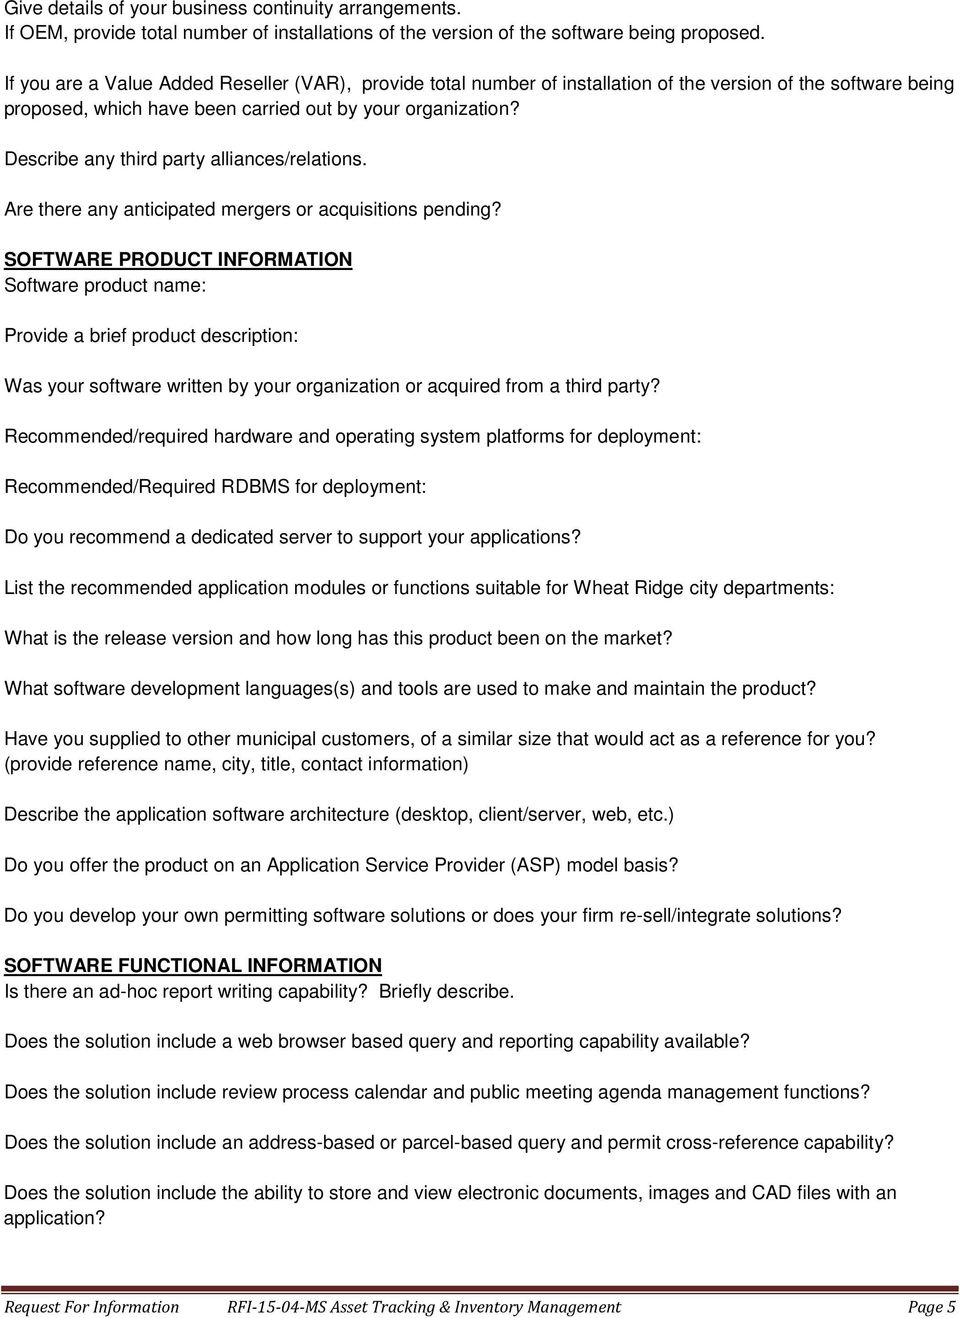 Describe any third party alliances/relations. Are there any anticipated mergers or acquisitions pending?